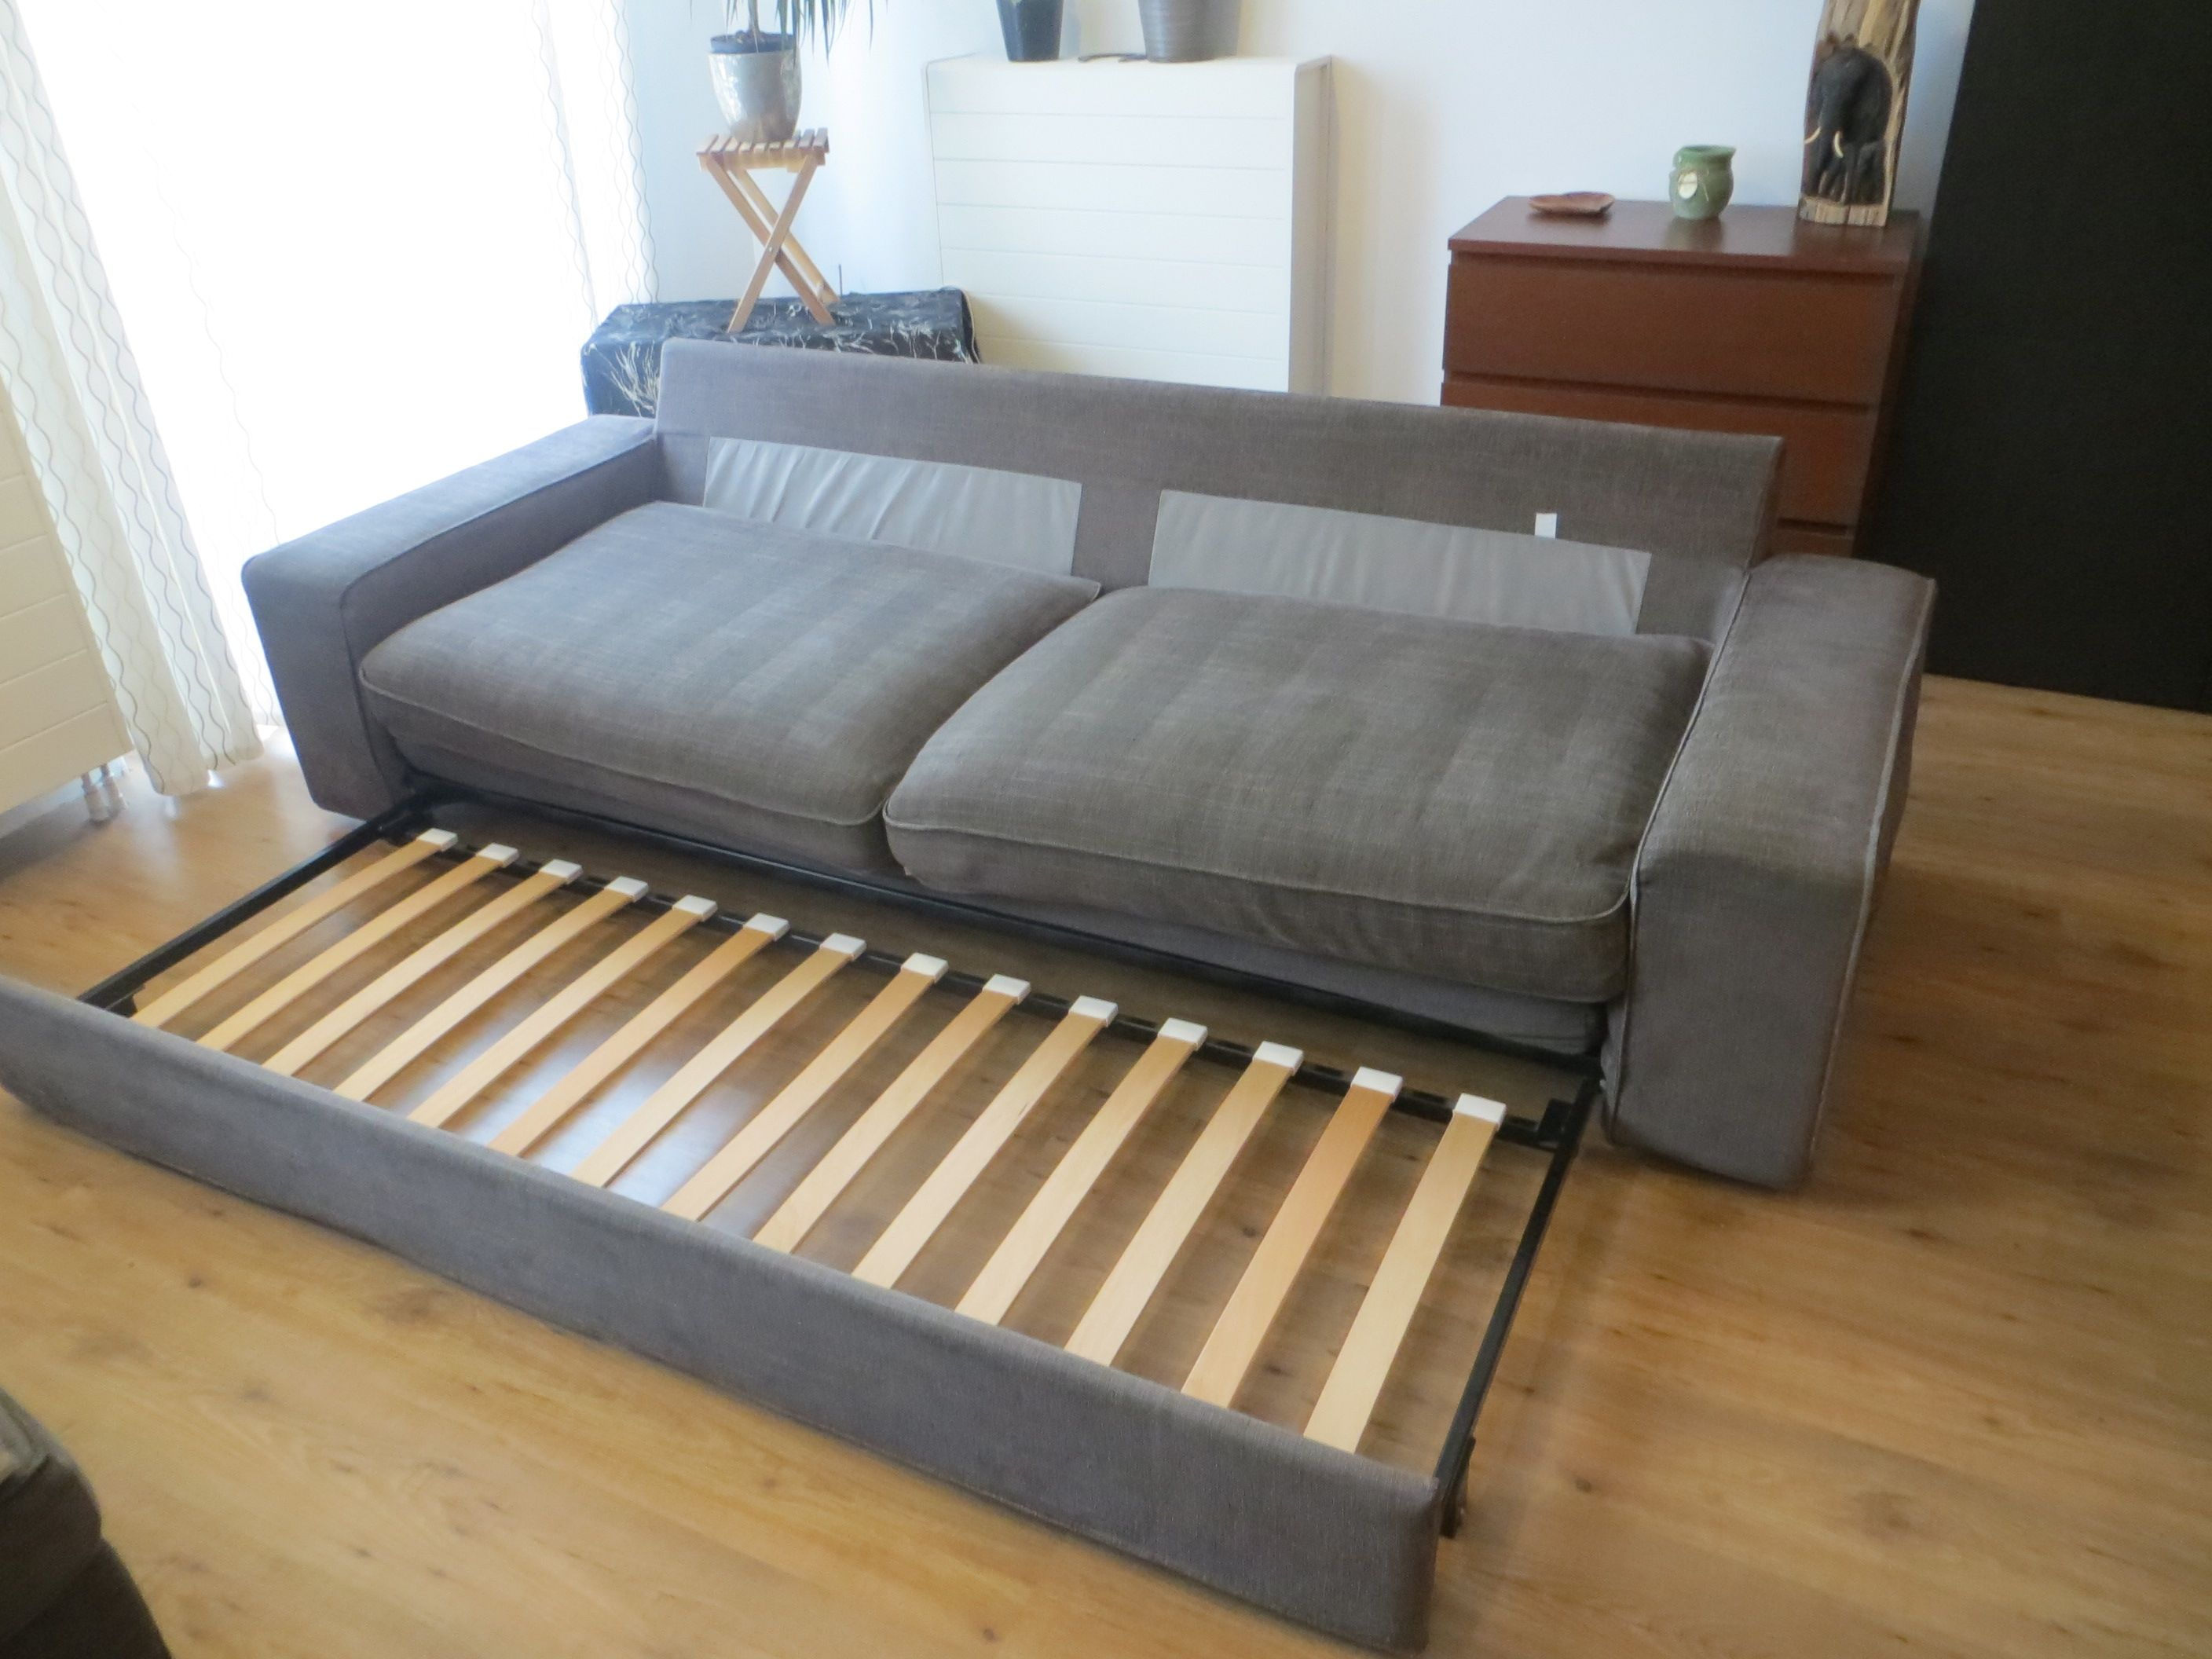 Bettsofa Kivik Kivik 3 Seat Sofa Bed Cover The Female Carpenter Pinterest